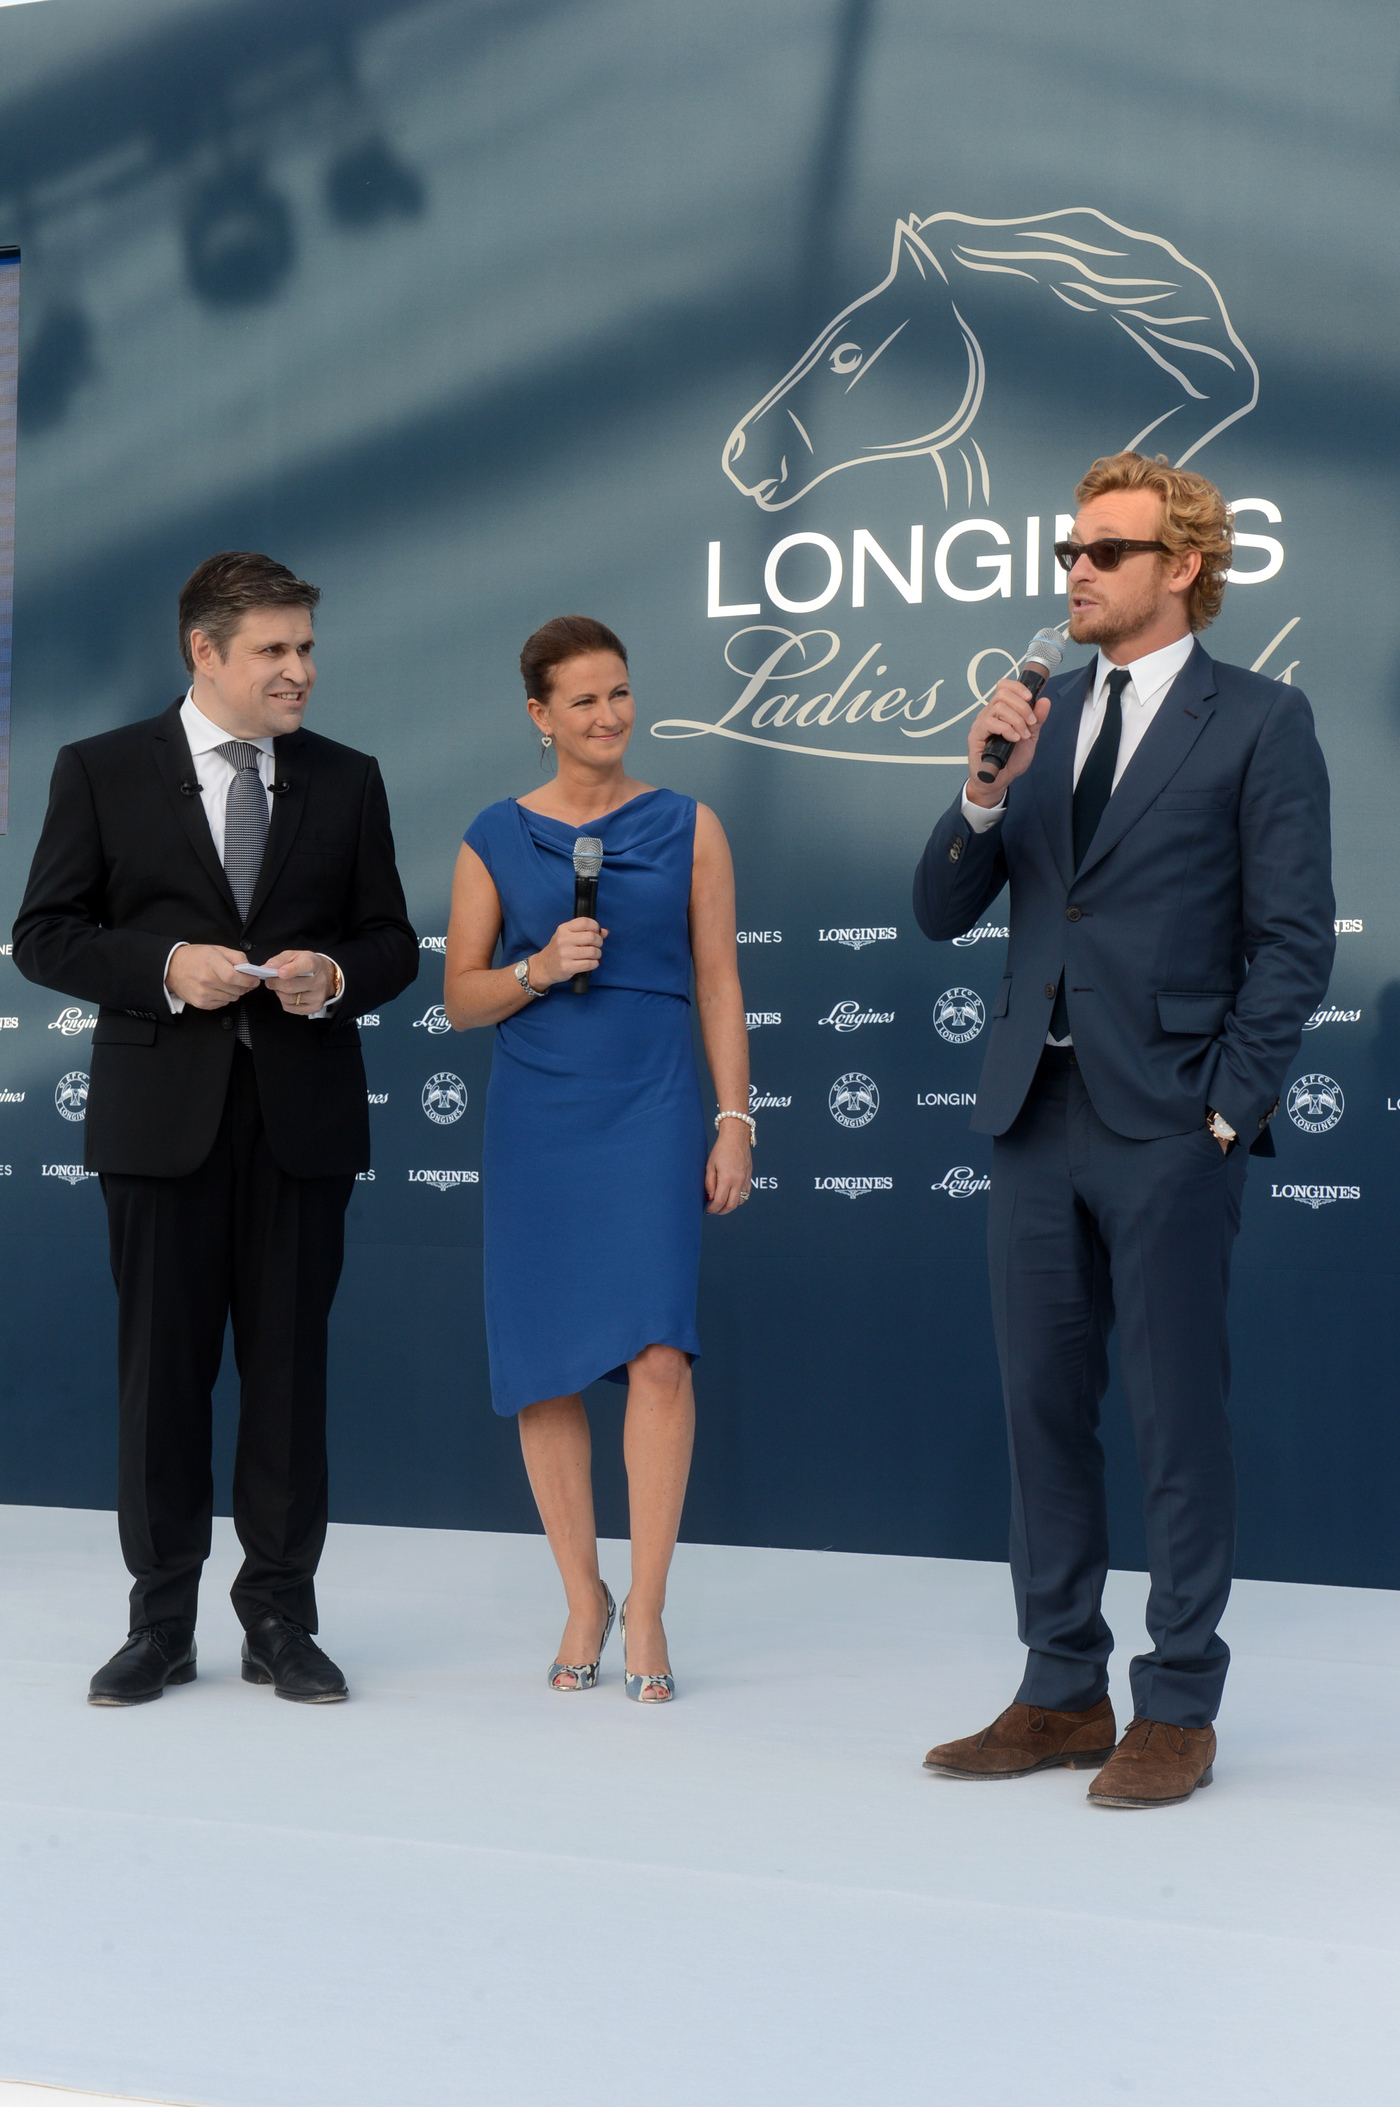 Longines Flat Racing Event: Longines Ladies Awards 4